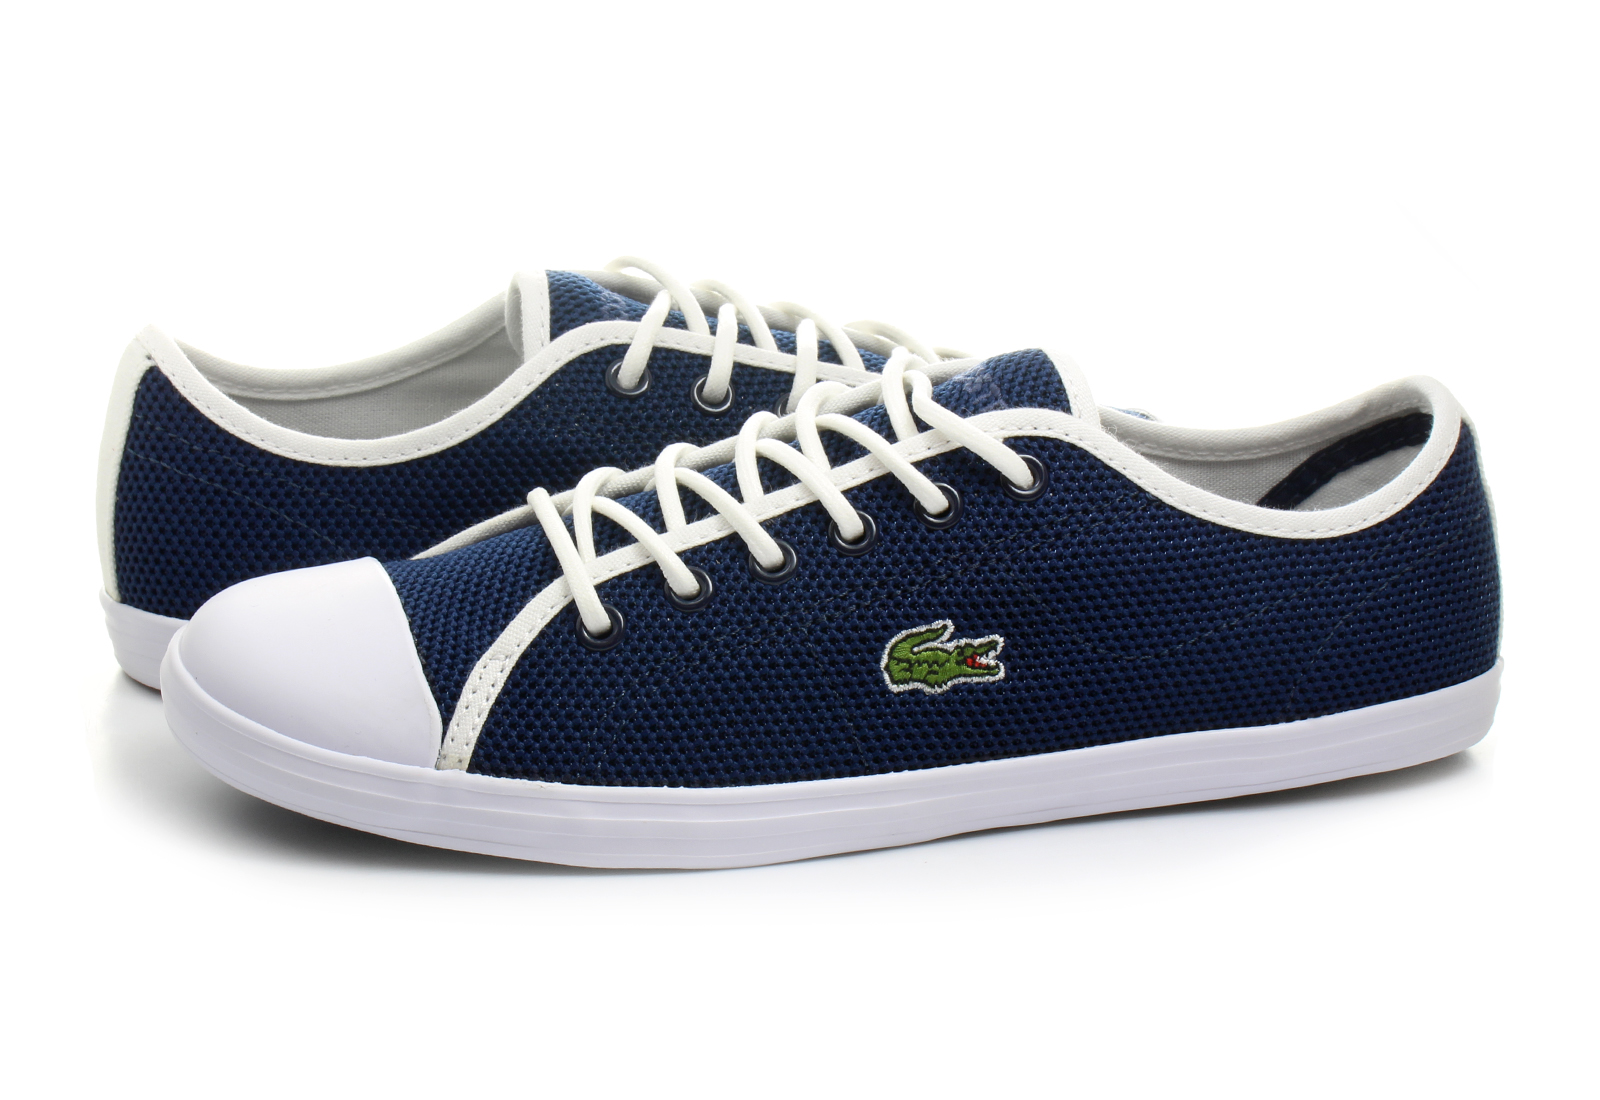 lacoste shoes ziane sneaker 171caw1045 003 online shop for sneakers shoes and boots. Black Bedroom Furniture Sets. Home Design Ideas